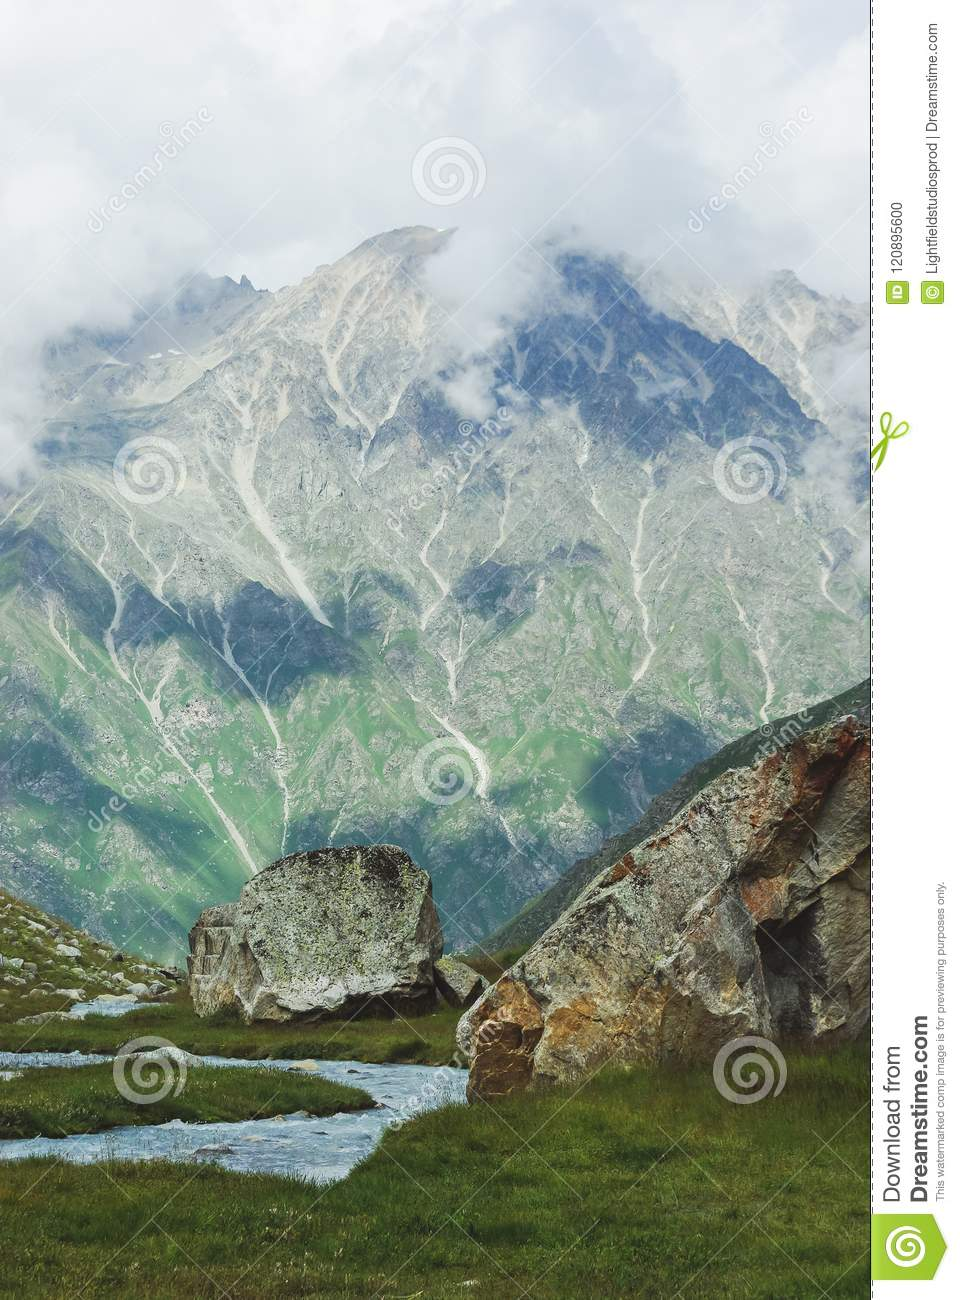 amazing view of mountains landscape, Russian Federation, Caucasus,